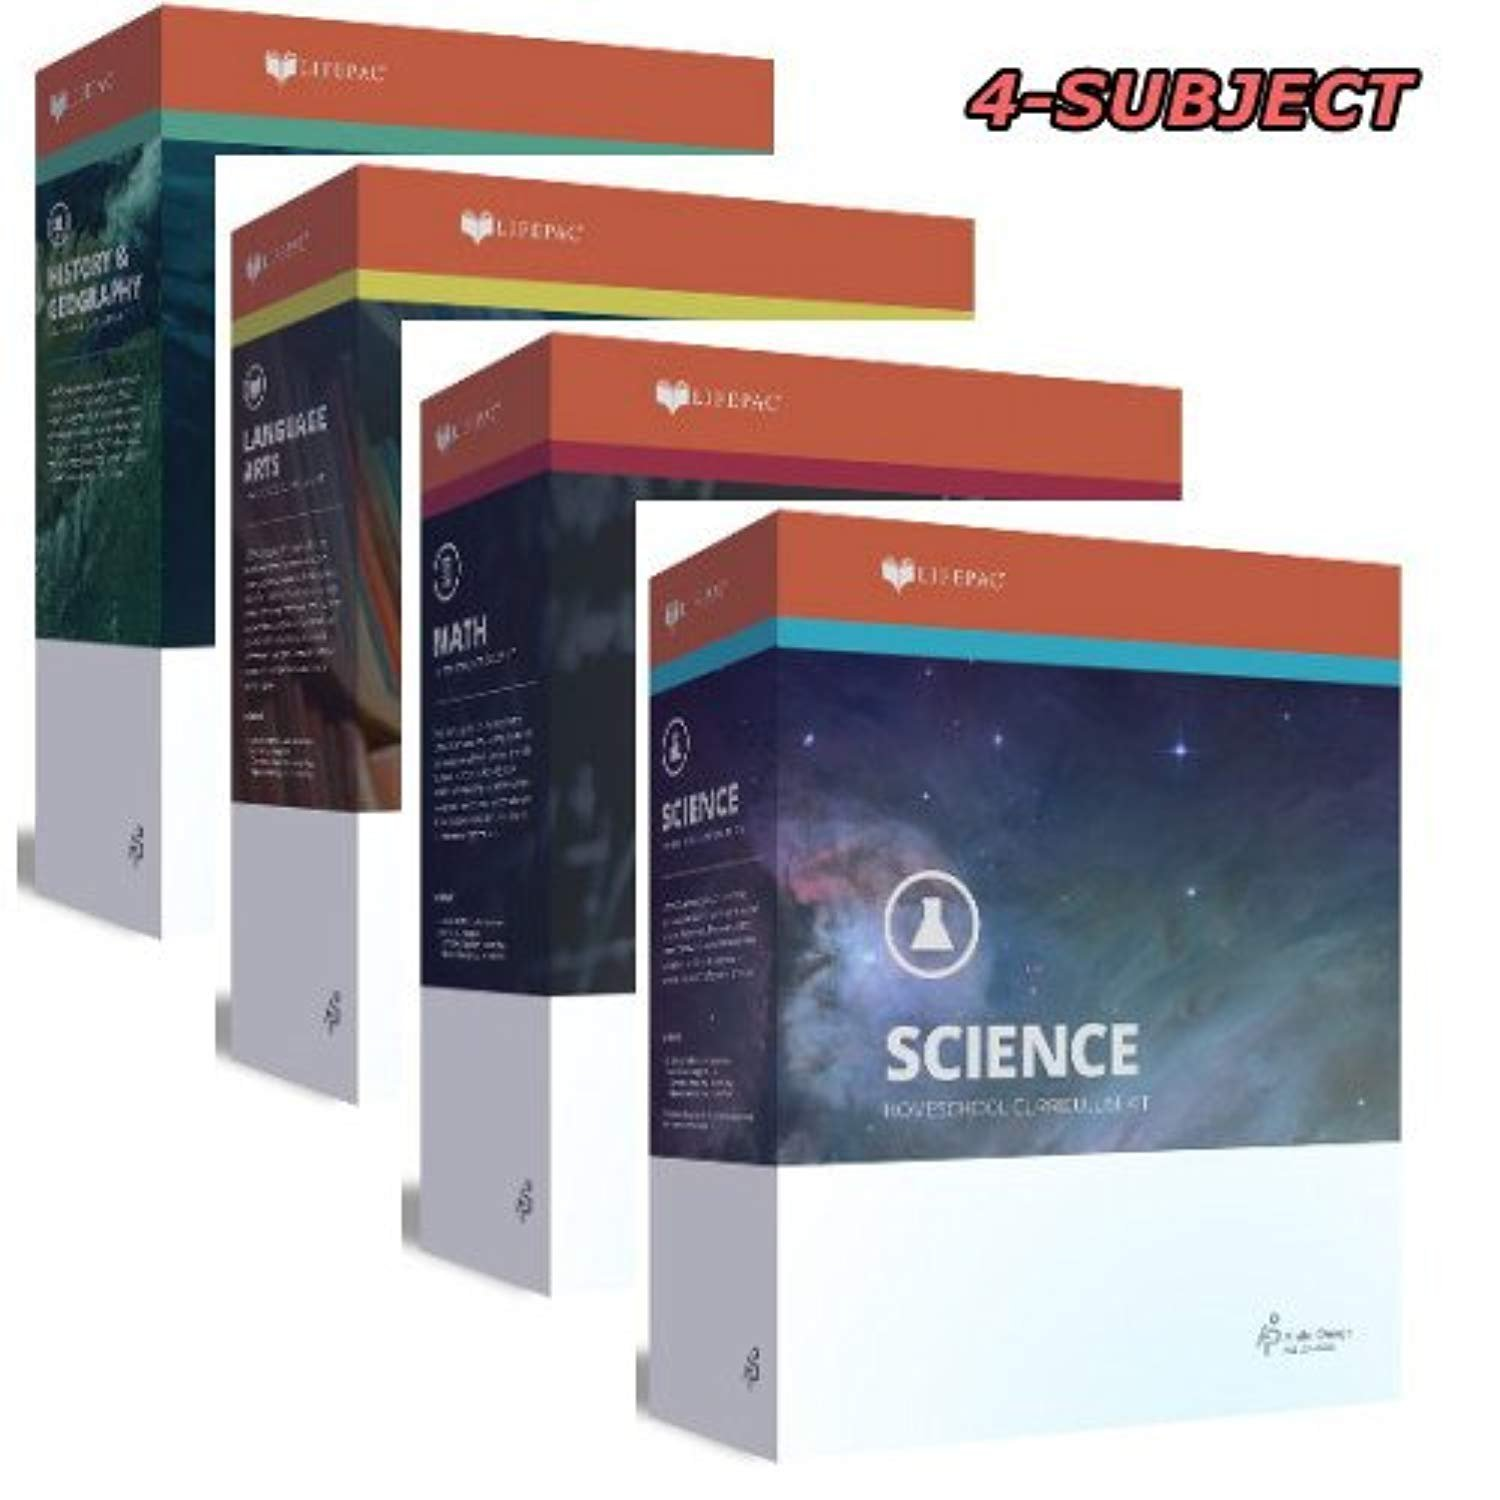 Details about New Lifepac Grade 9 AOP 4-Subject Box Set (Math, Language,  Science & History